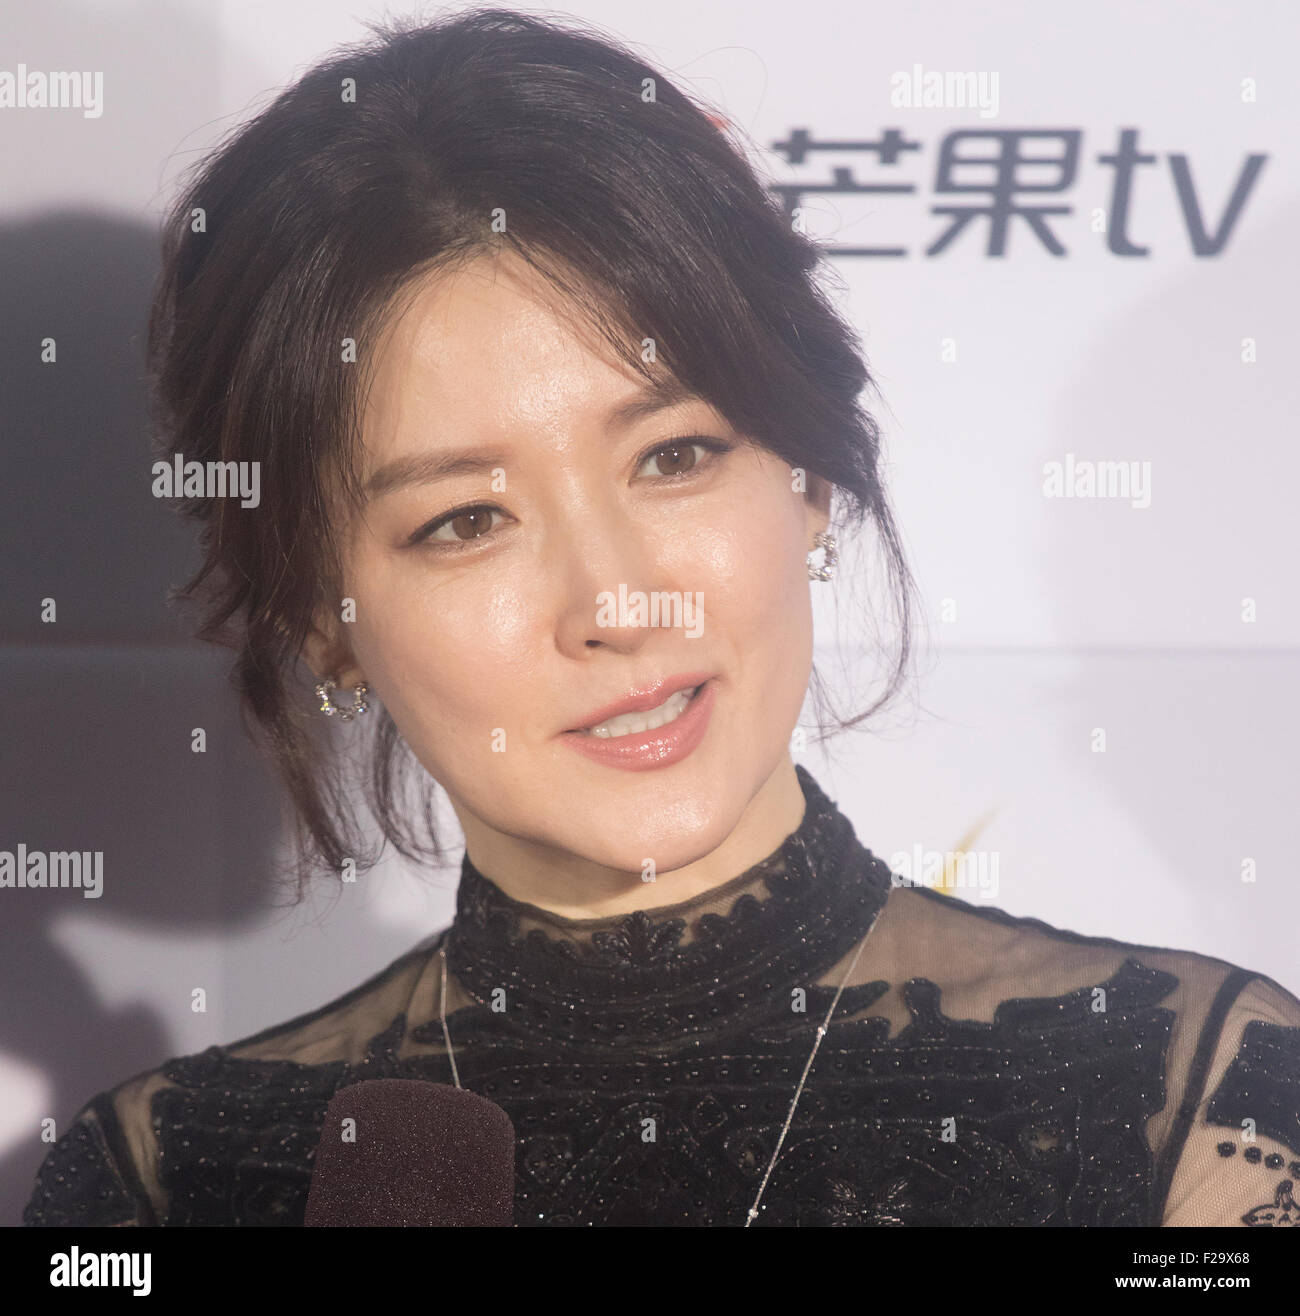 Lee Young ae Sep 10 2015 South Korean actress Lee Young ae